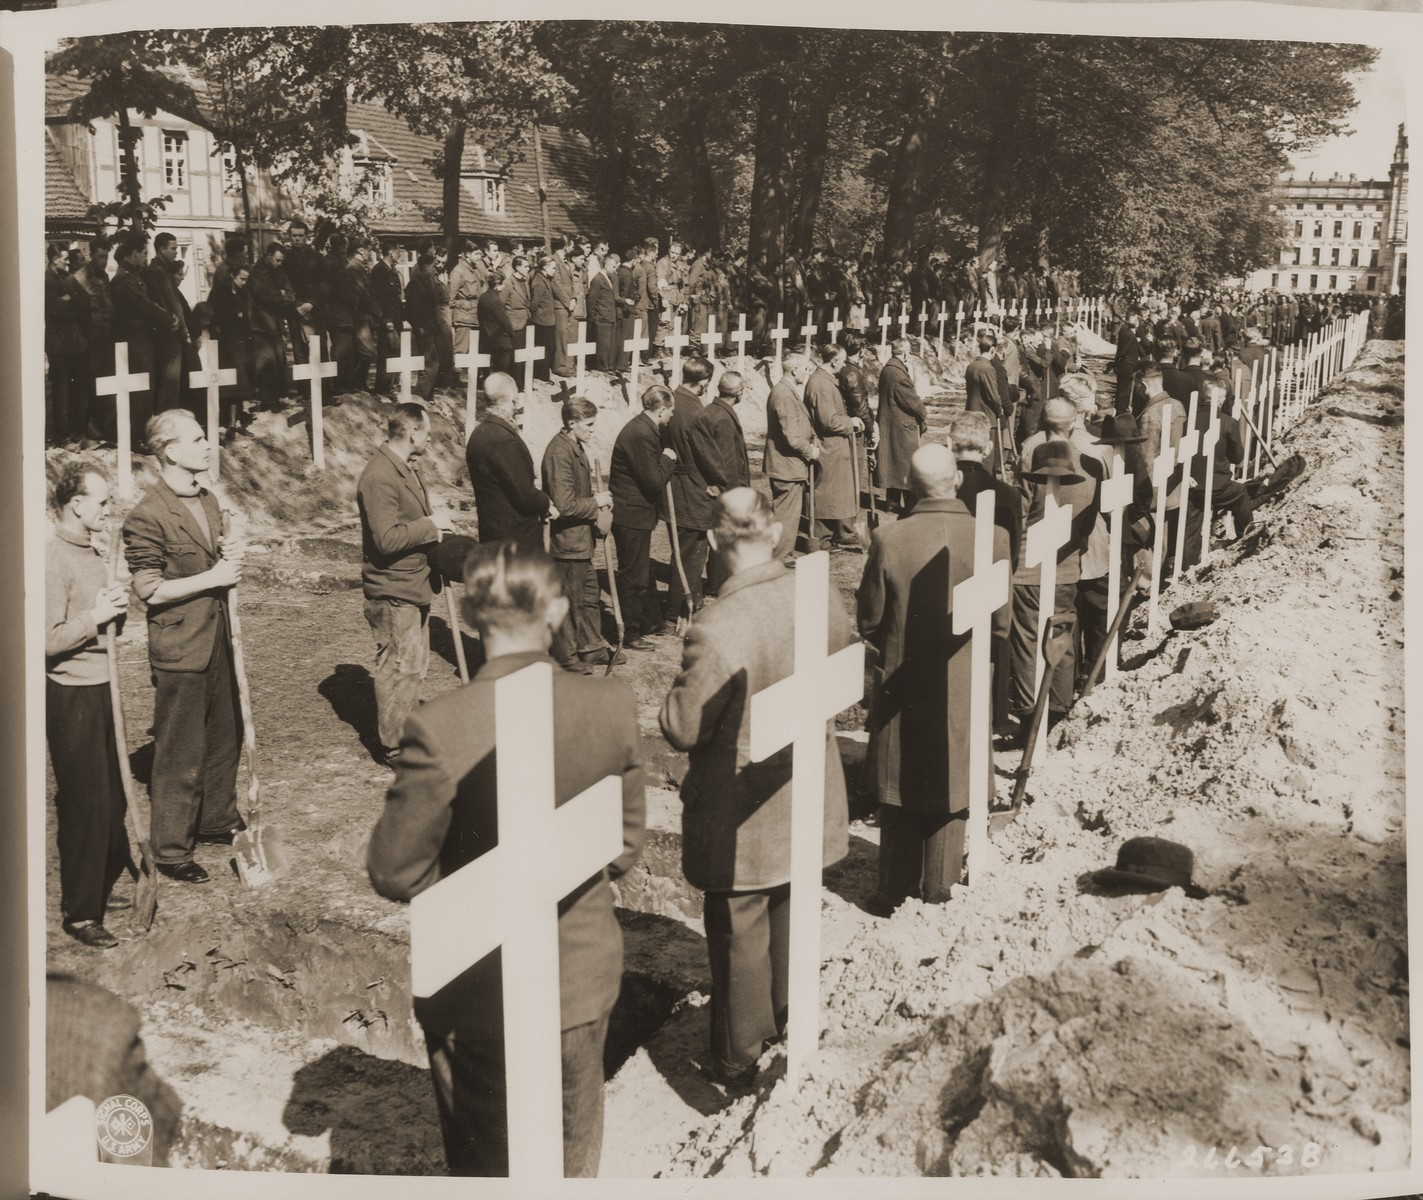 German civilians pause for a moment of silence at the mass funeral on the palace grounds of the Archduke of Mecklenburg in Ludwigslust, where the townspeople were forced by U.S. troops to bury the bodies of prisoners killed in the Woebbelin concentration camp.